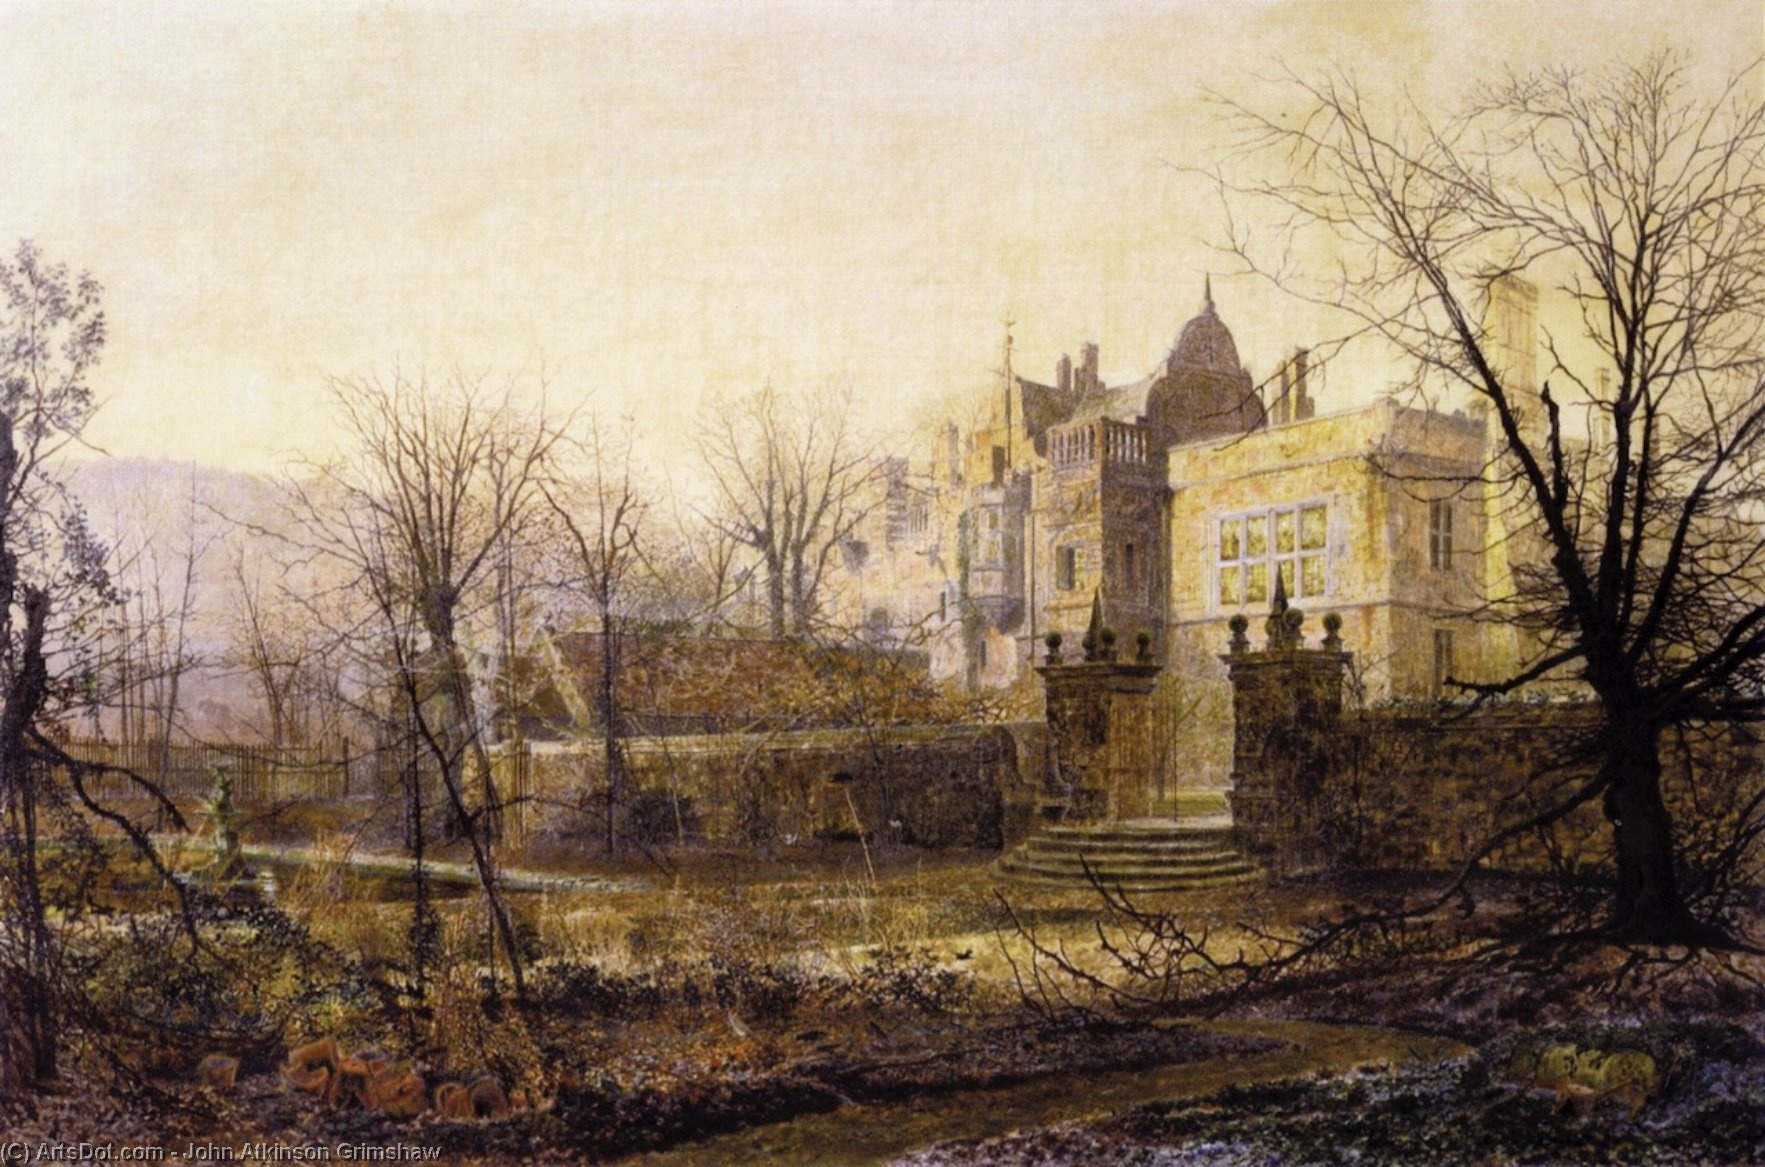 Knostrop Hall, Early Morning by John Atkinson Grimshaw (1836-1893, United Kingdom)